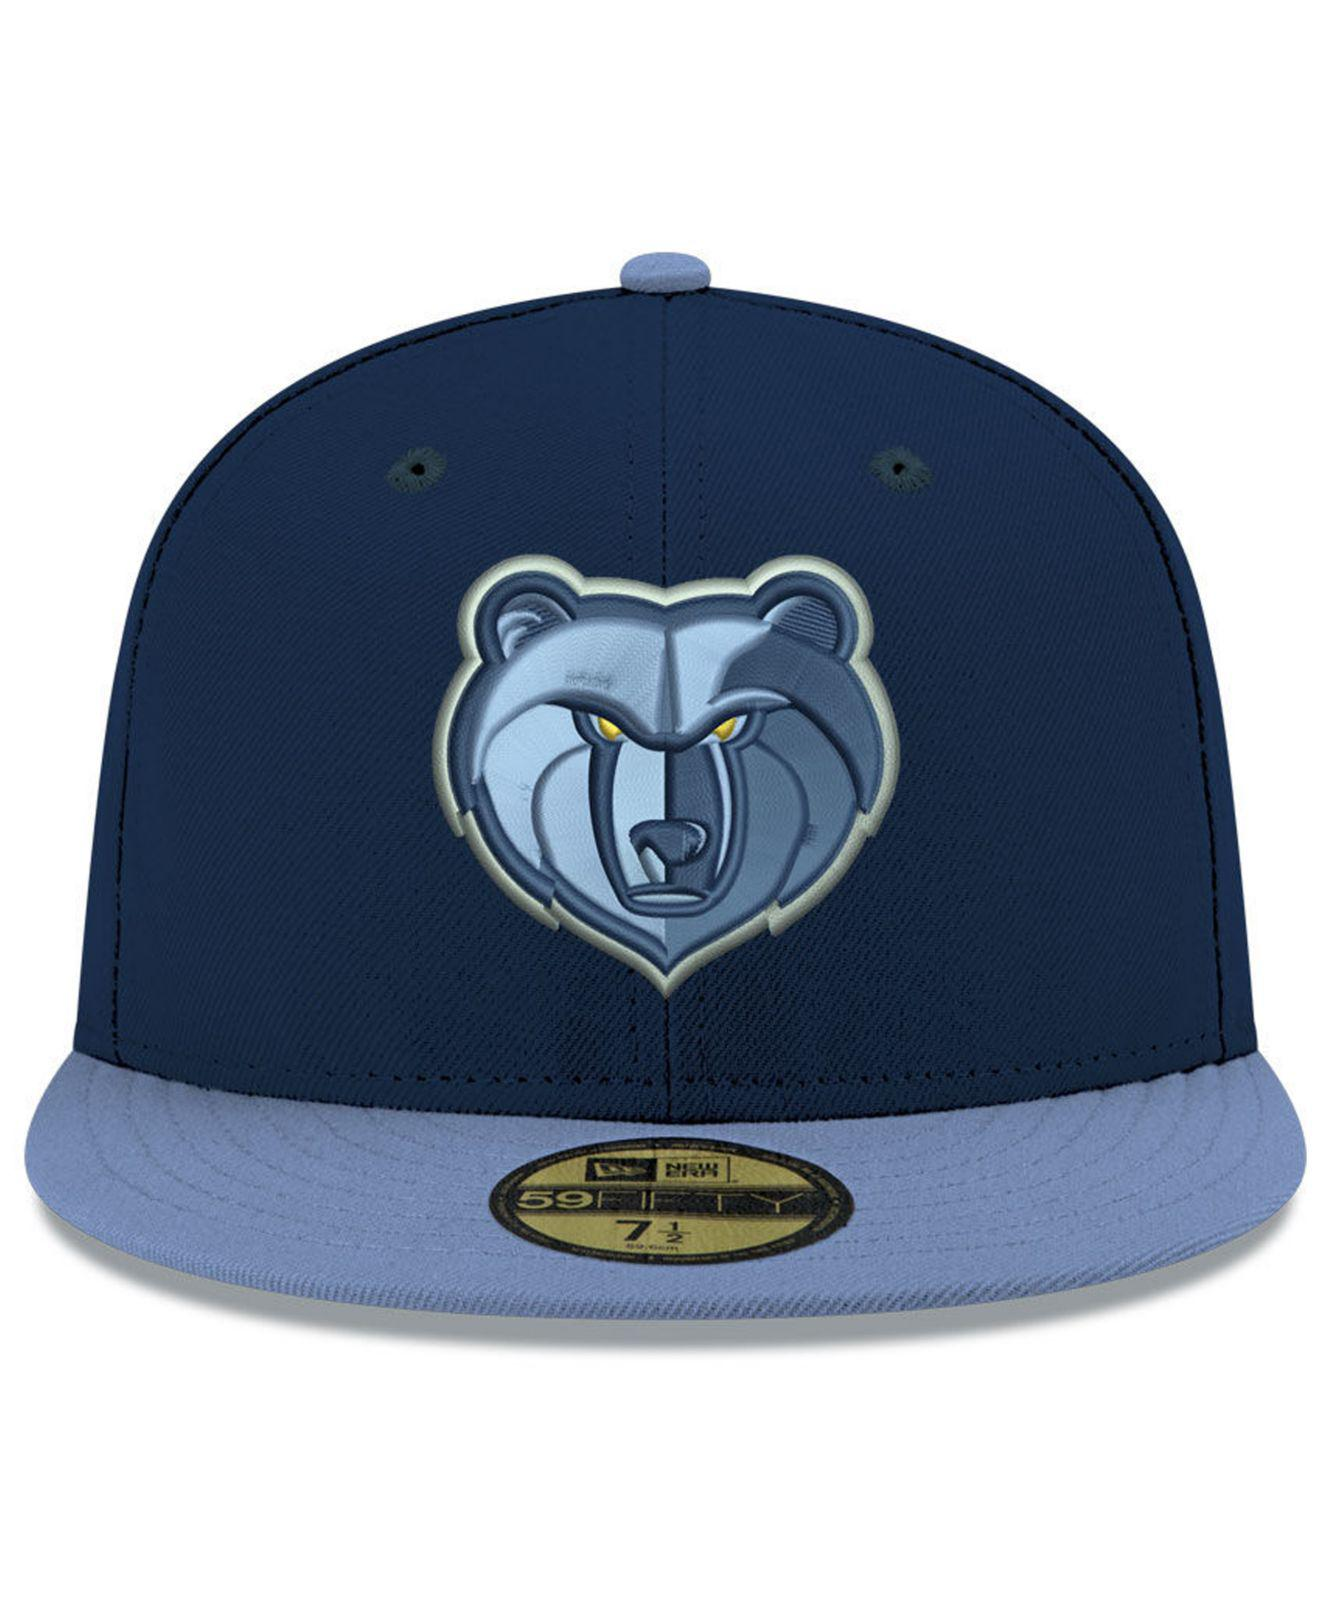 online store c5bf9 6dc0c ... spain lyst ktz memphis grizzlies basic 2 tone 59fifty fitted cap in  blue for men 79276